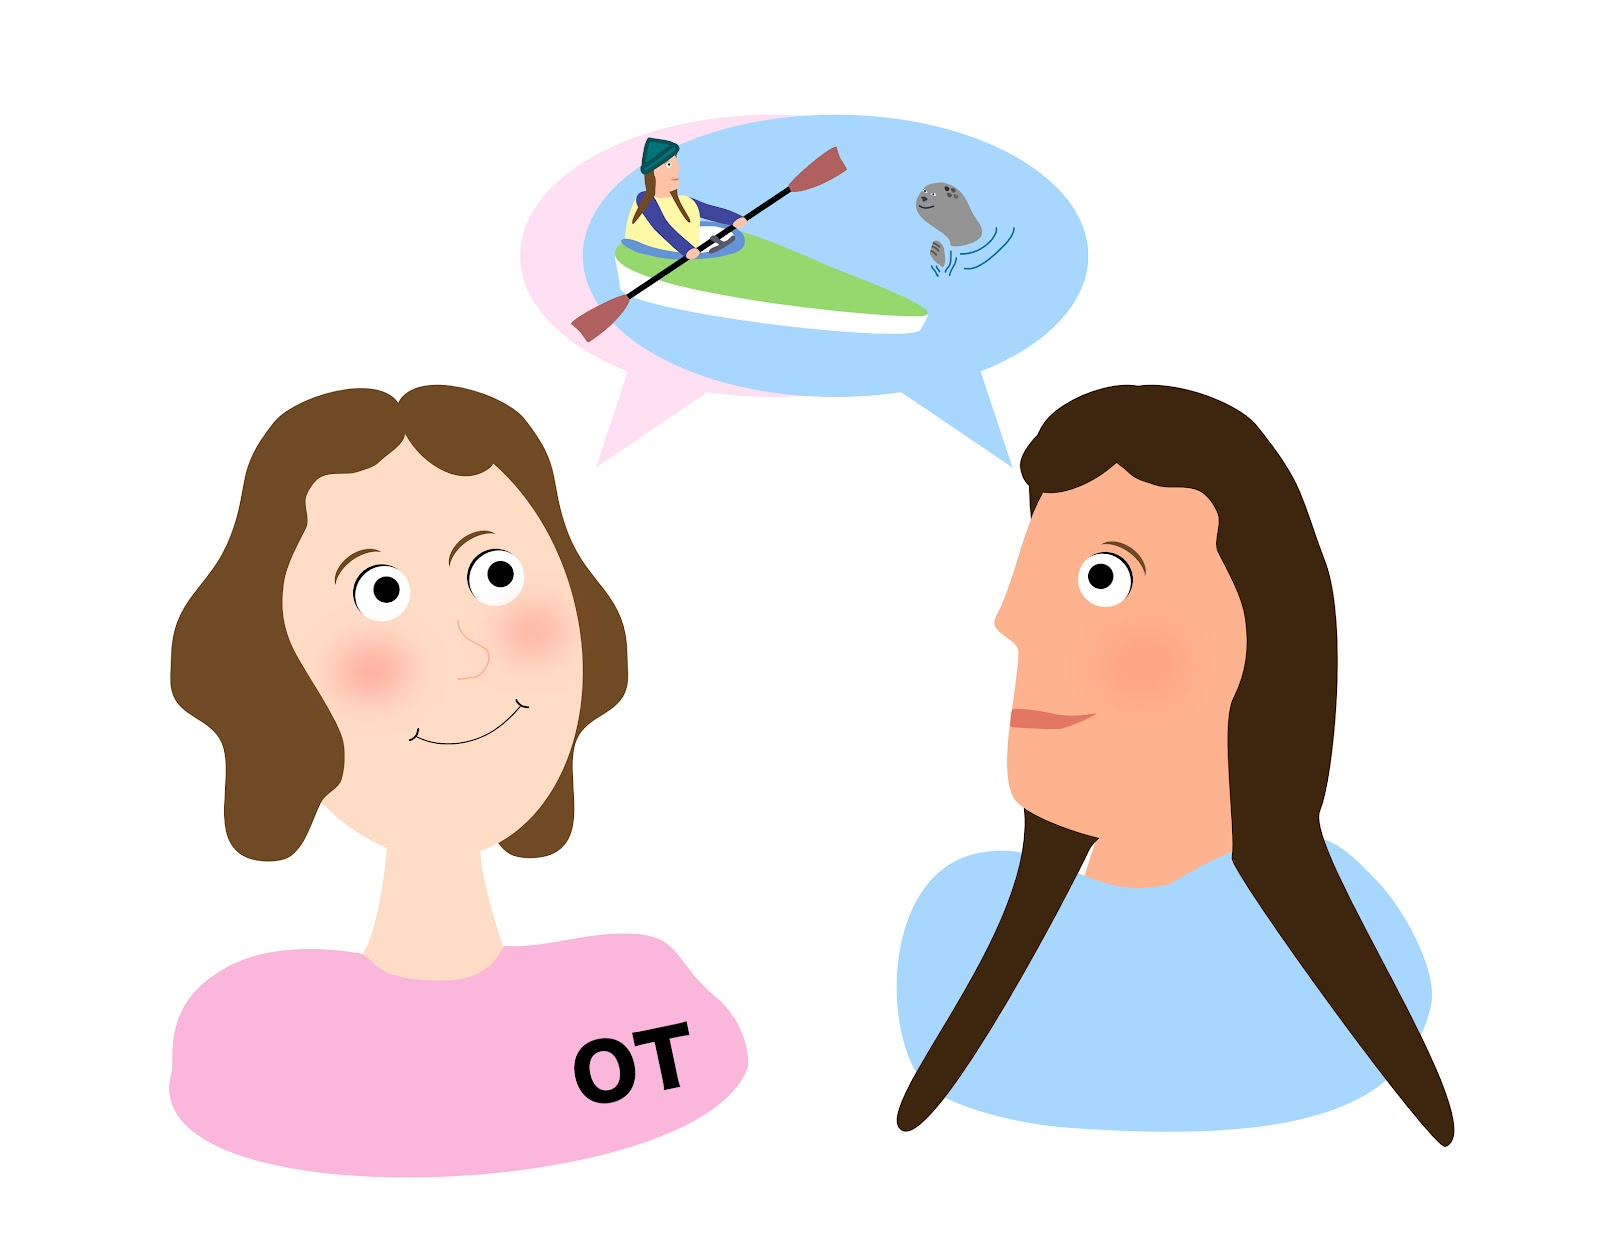 Occupational therapist and client discussing client's goal of kayaking. (kayaking illustrated in clients speech bubble). OT is wearing pink with OT on shirt, and client is wearing blue; their shirt colours match their speech bubbles.